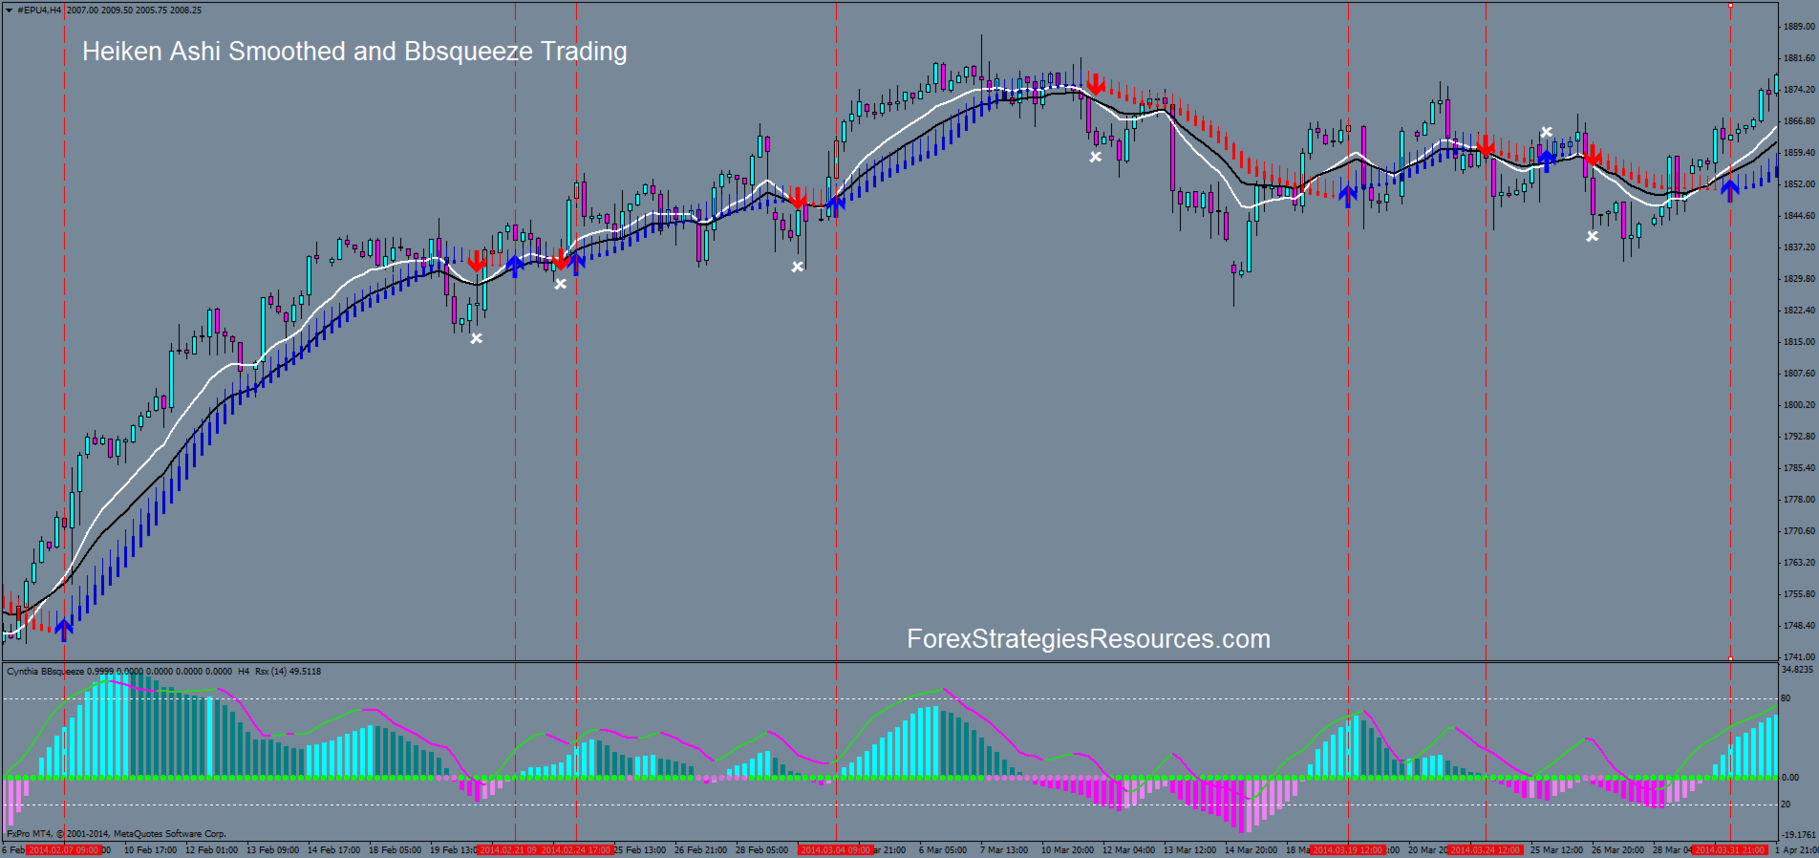 Heiken Ashi Smoothed and Bbsqueeze Trading - Forex